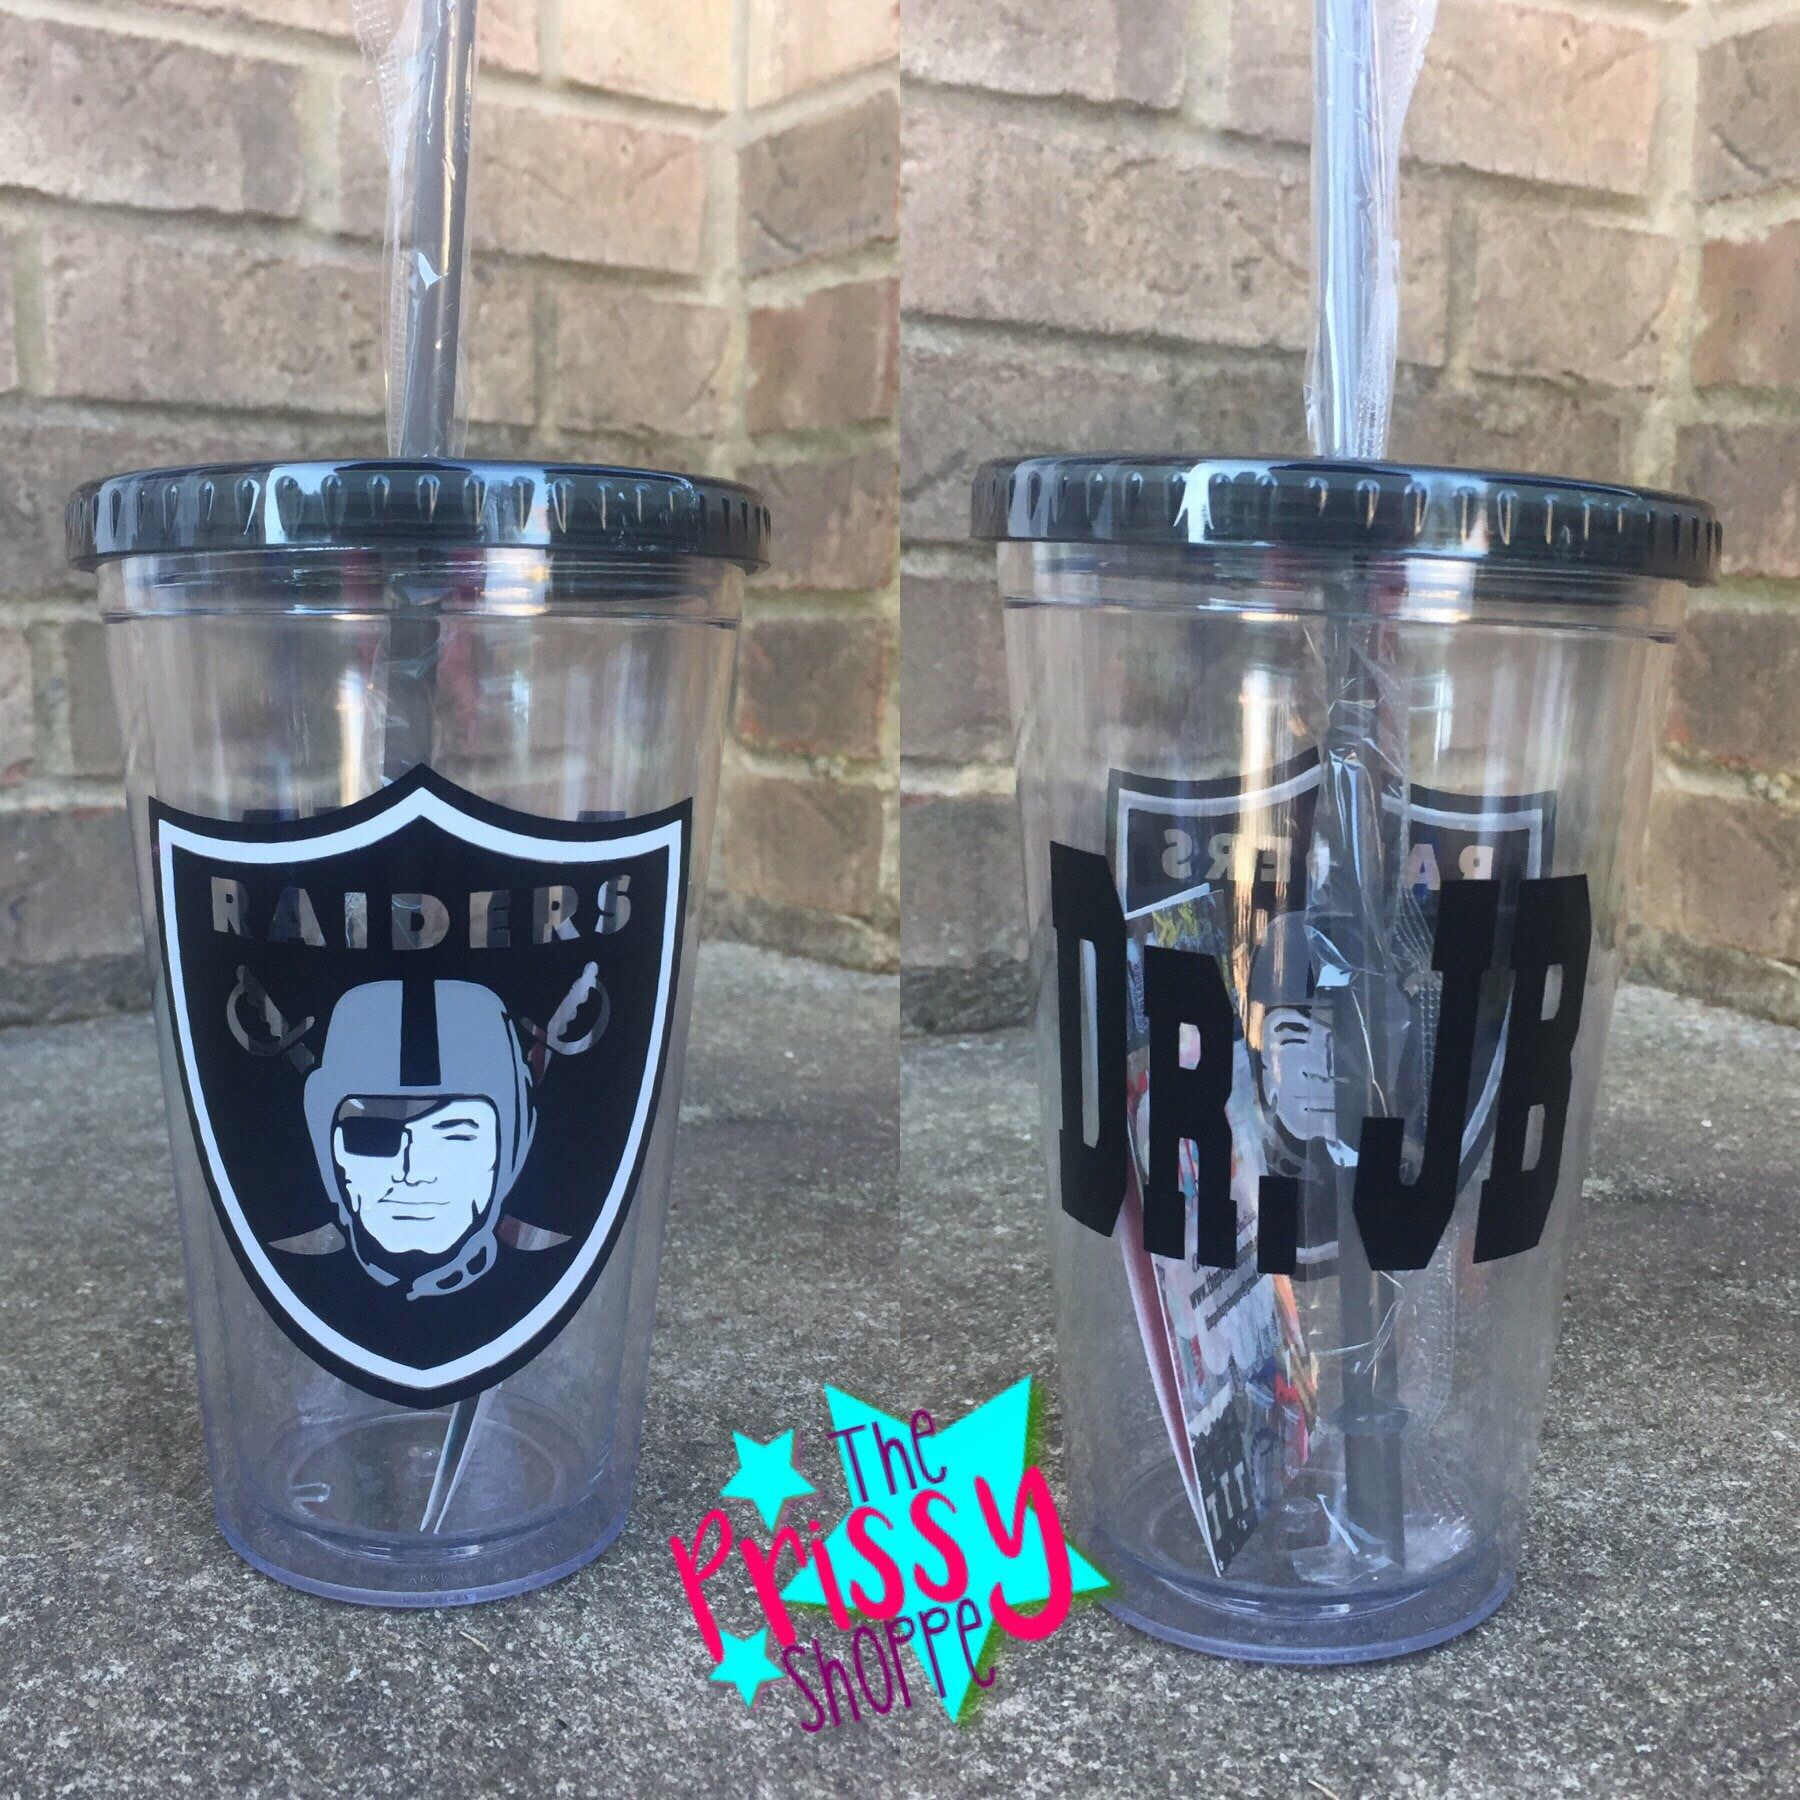 13a40e943d40 Oakland Raiders Football · Custom Tumblers · Personalized Tumblers · A  personal favorite from my Etsy shop https   www.etsy.com